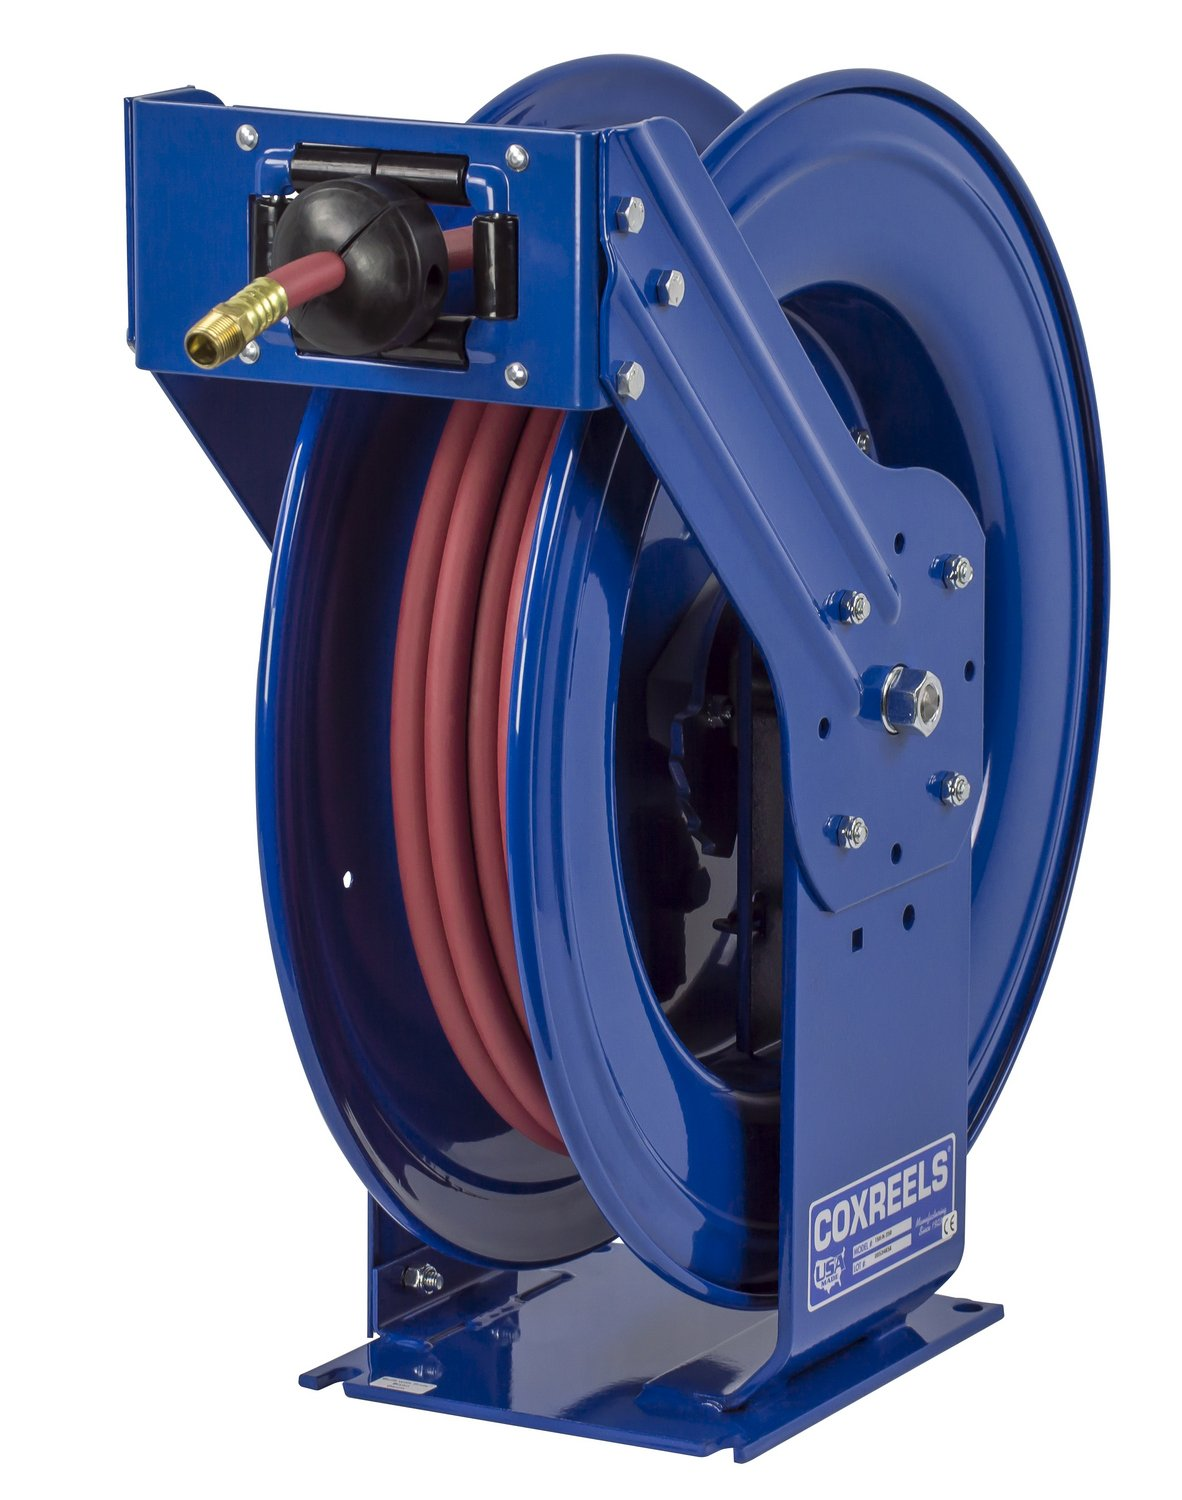 "Coxreels TSH-N-3100 Retractable Air, Water or Oil Hose Reel, T-Fuel Series 3/8""x100', 300PSI-Easy-Maintenance with Brass Swivel & Multi-Position Mount Arm-Heavy-Duty Steel Construction, Made in USA"